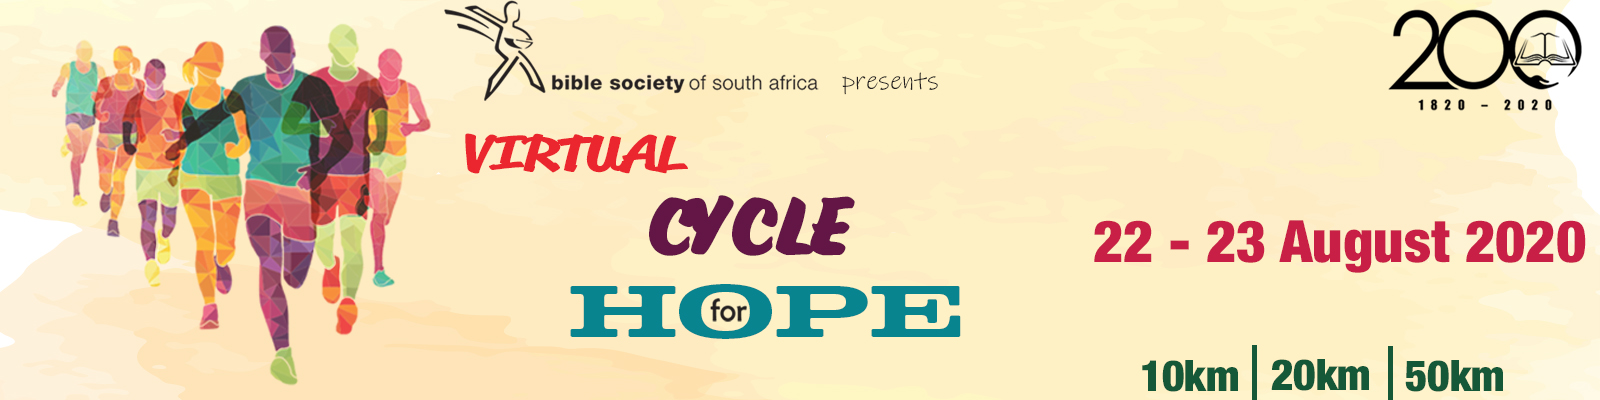 Cycle-for-Hope_Header Cycle for Hope 20km Results